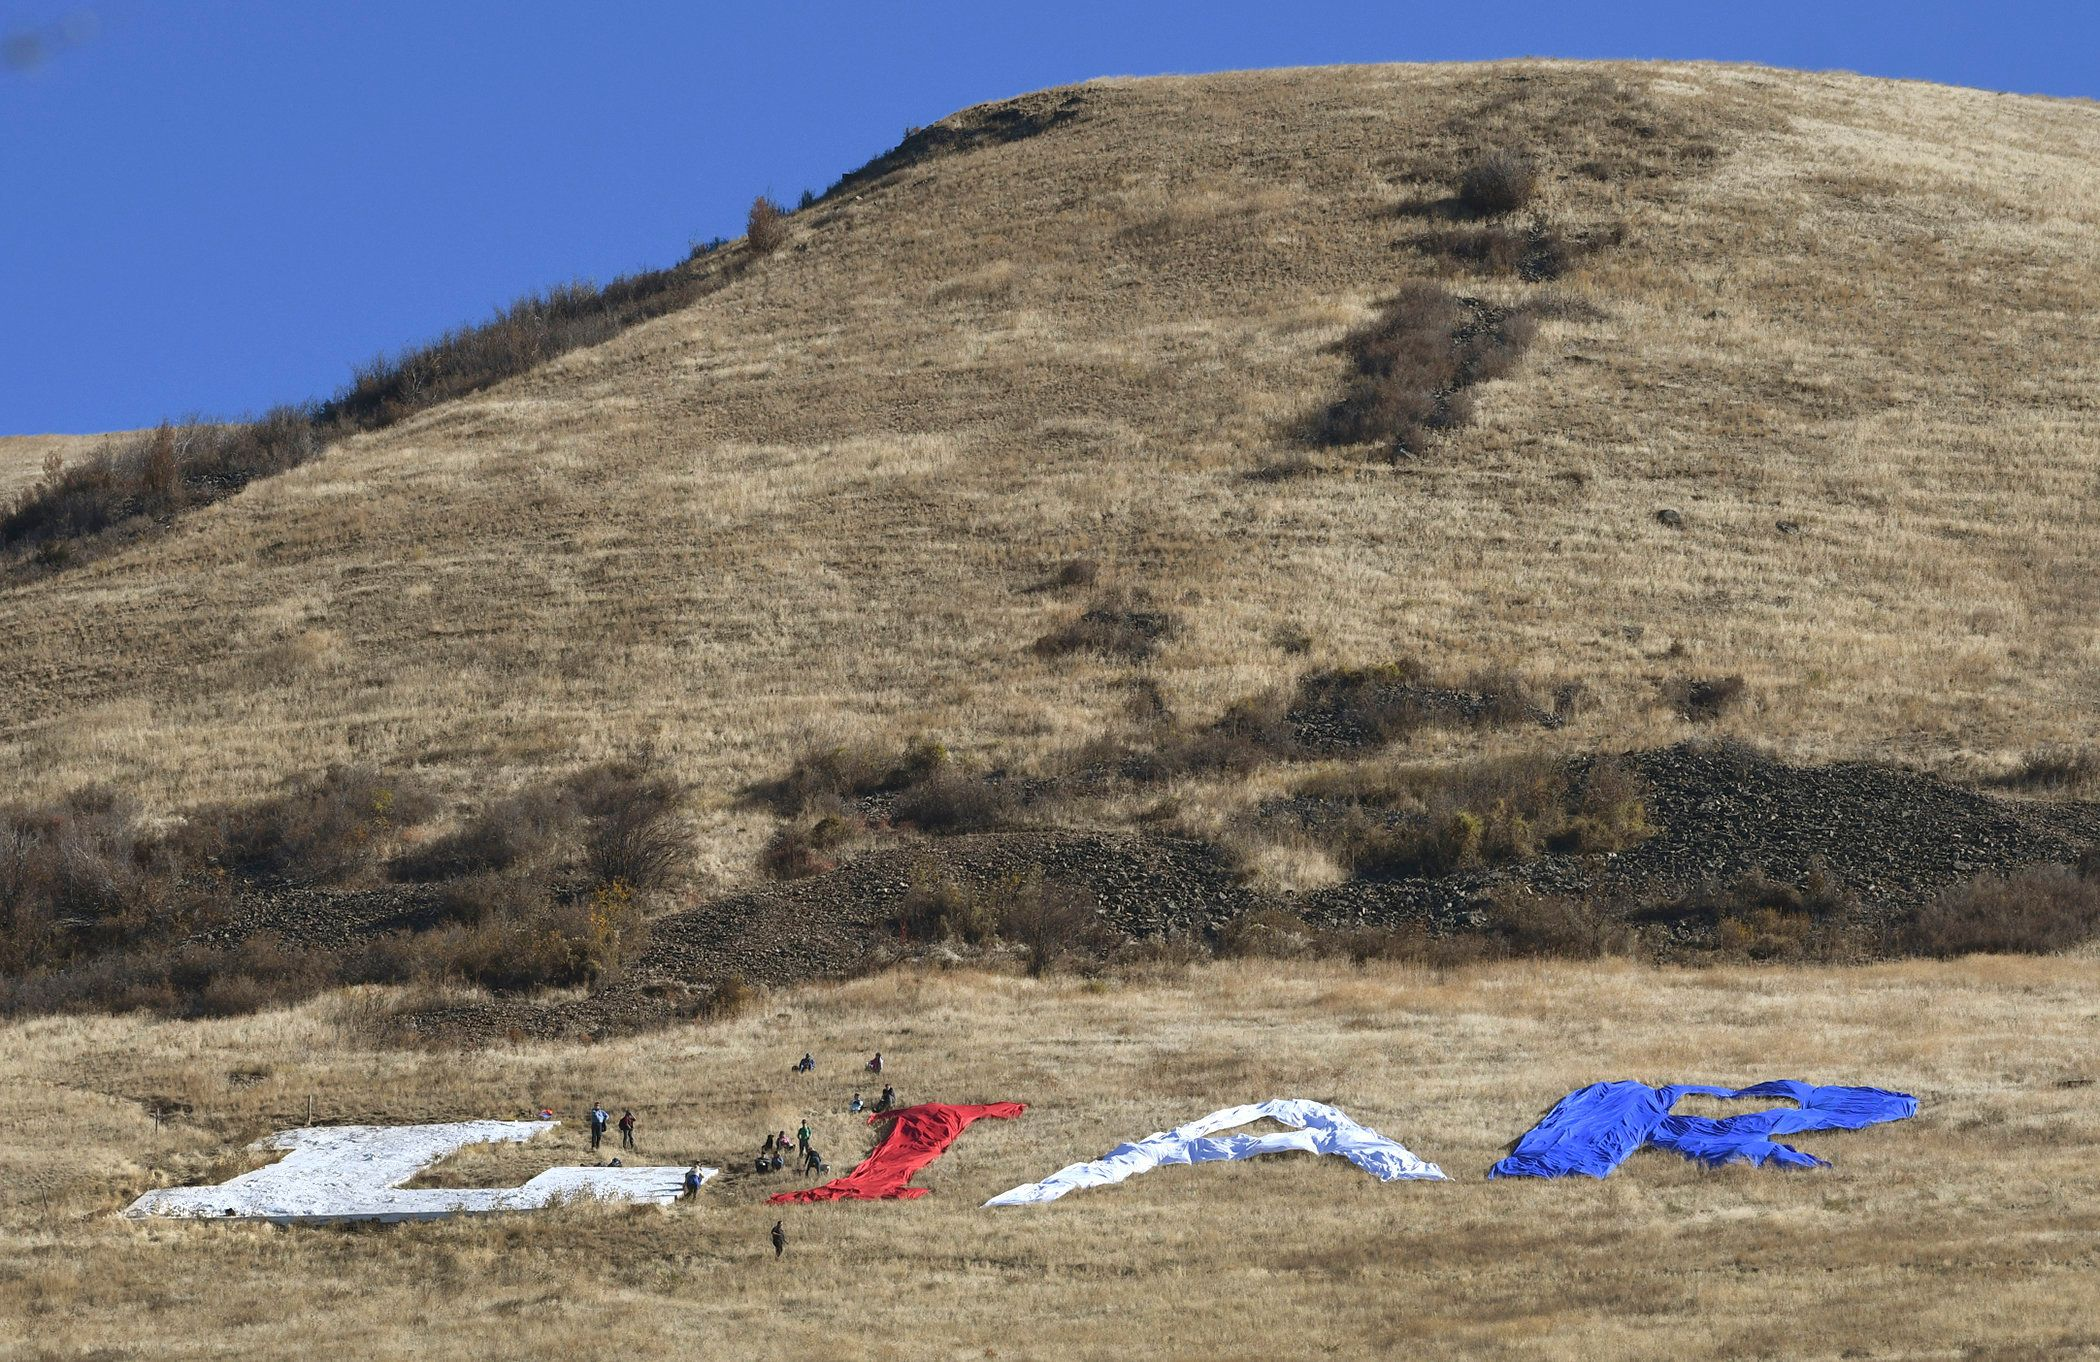 Protesters hiked up Mount Jumbo Thursday morning, Oct. 18, 2018 in Missoula, Mont., to lay out letters spelling the word LIAR in protest of President Donald Trump's visit. Using the permanent letter L on Mount Jumbo, protesters spread large pieces of fabric to complete the word LIAR.  President Trump is visiting Missoula to campaign for Republican Matt Rosendale, who is challenging Democratic U.S. Sen. Jon Tester.  (Kurt Wilson/The Missoulian via AP)